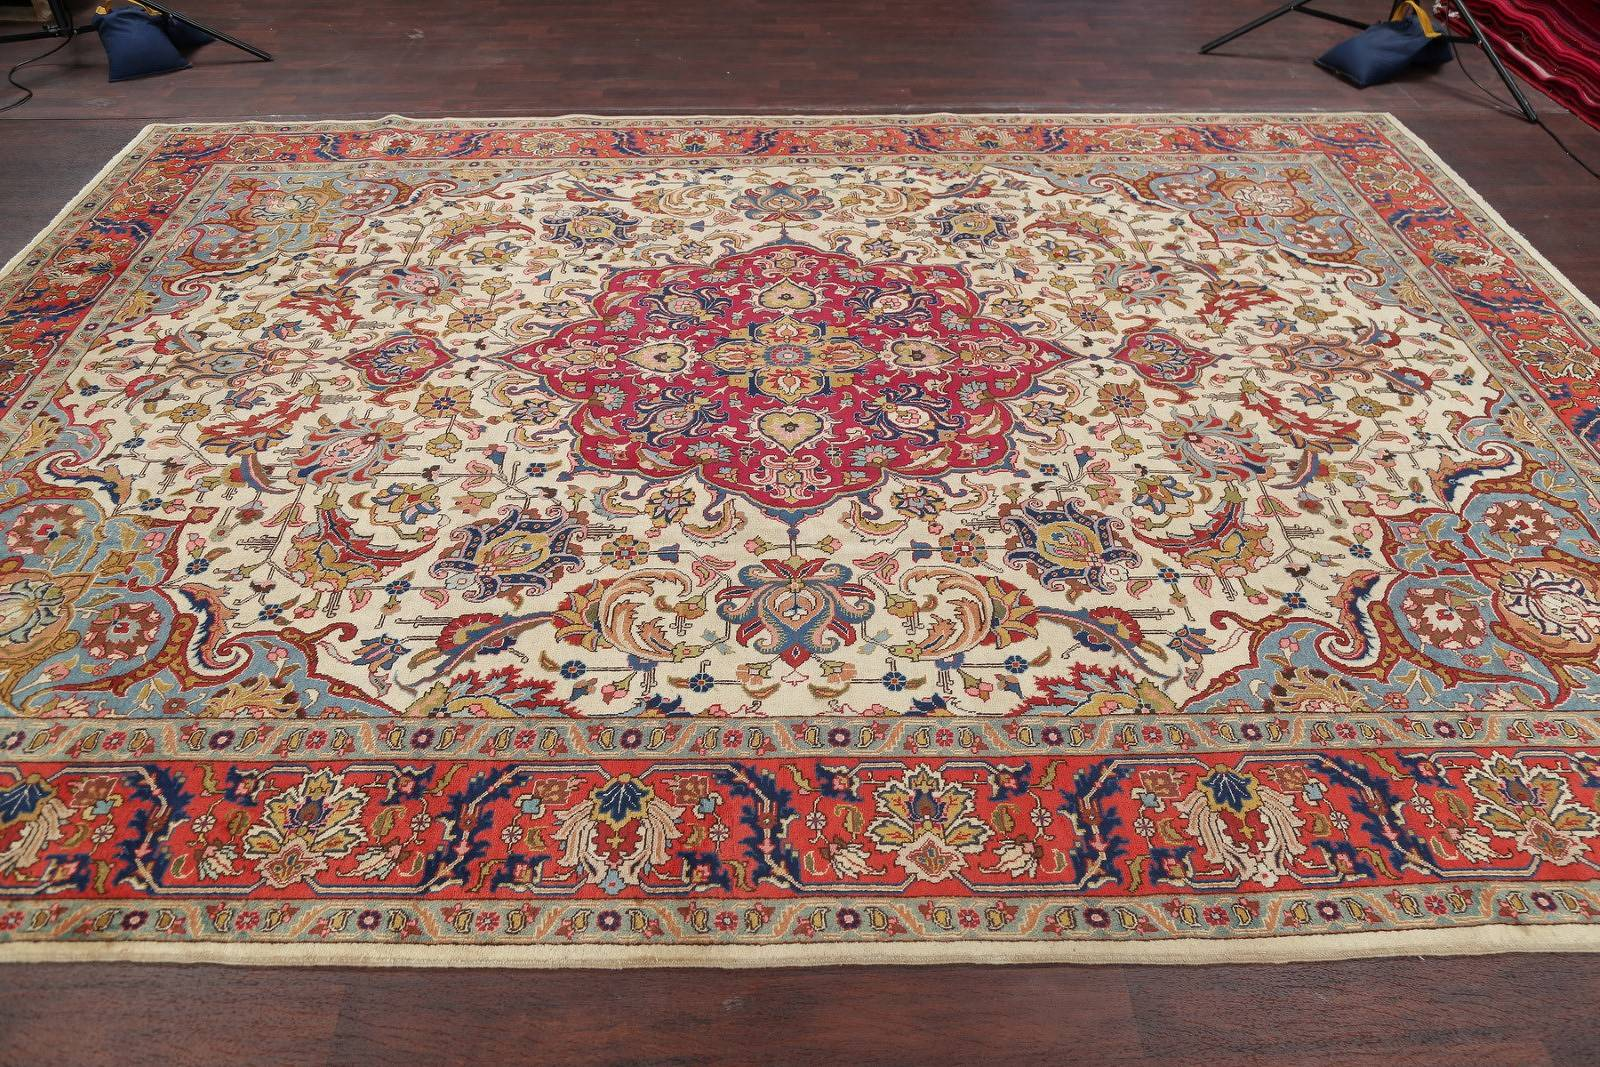 Antique Vegetable Dye Tabriz Persian Hand-Knotted Area Rug Wool 10x13